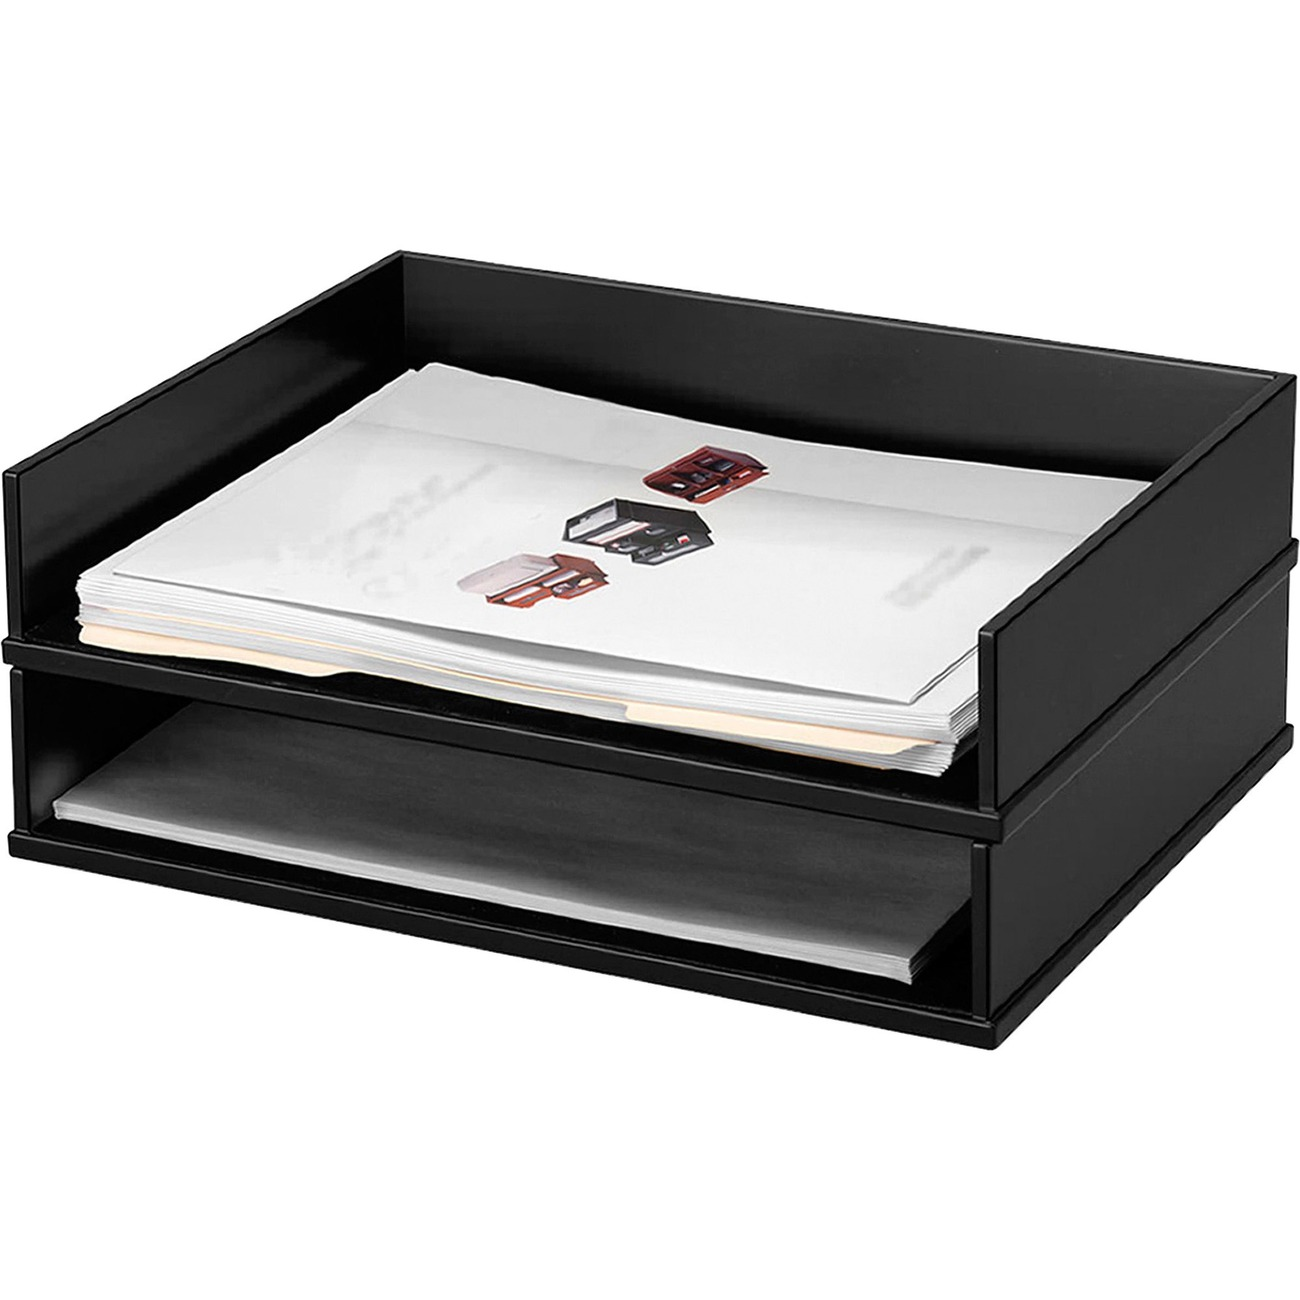 Side Loading Letter Size Desk Tray Is Large Enough For Papers Folders And Notebooks